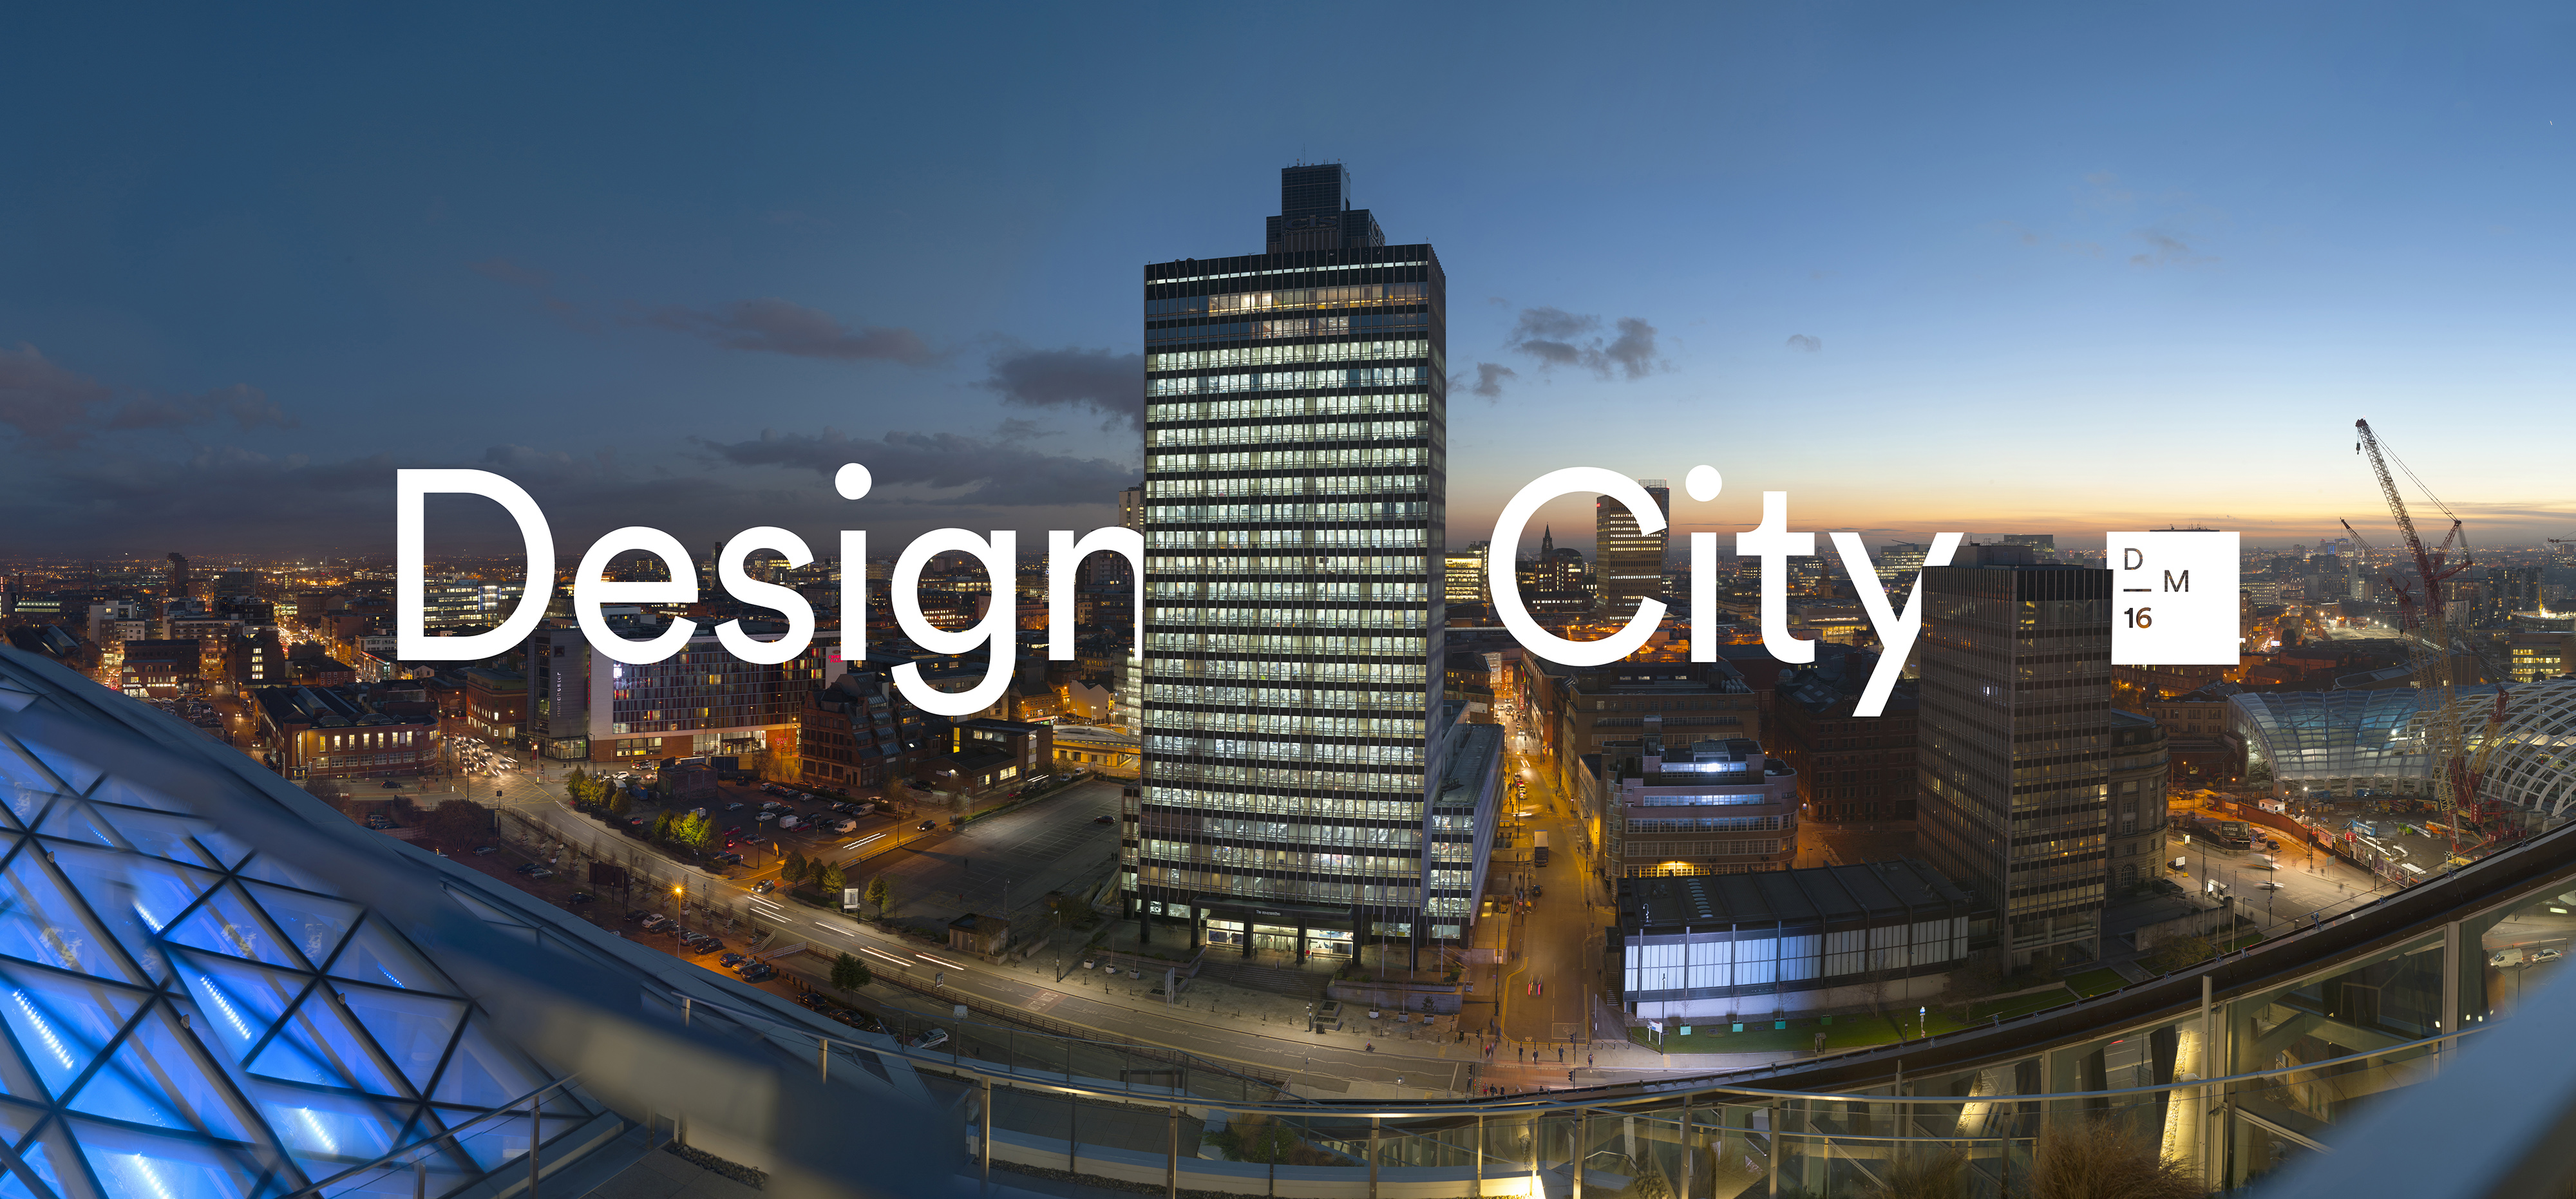 Review design manchester 2016 design week for Design manchester